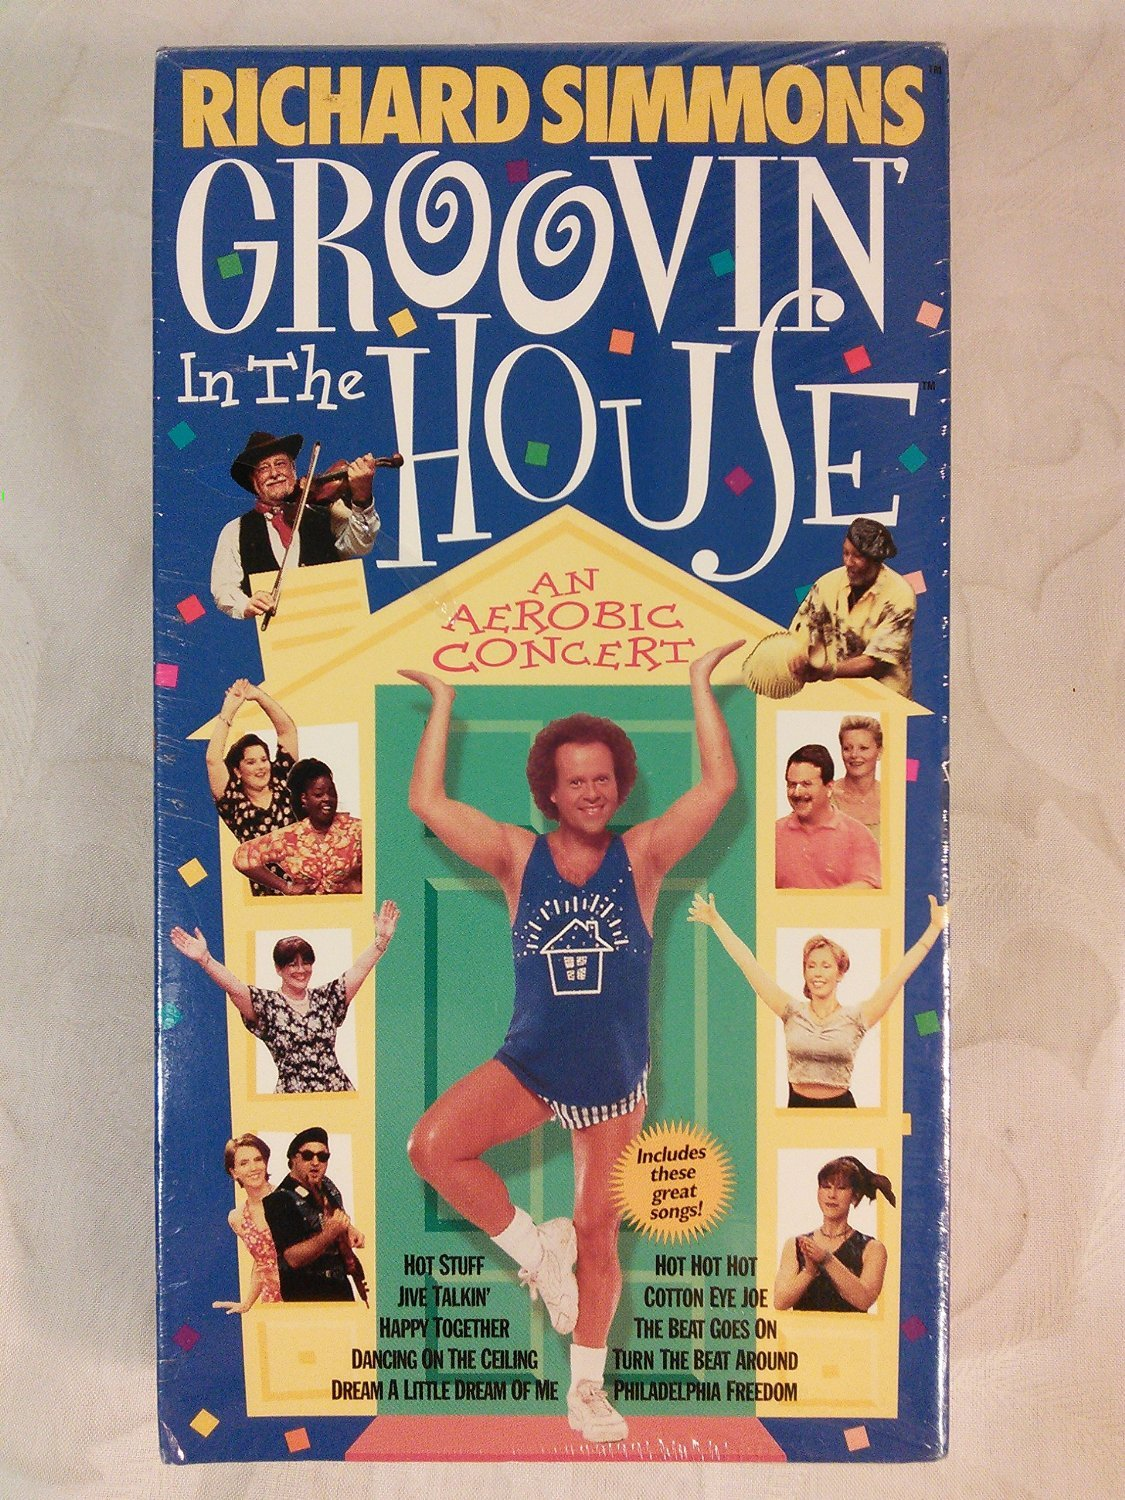 Richard Simmons Groovin' in the House - An Aerobic Concert [VHS Tape]